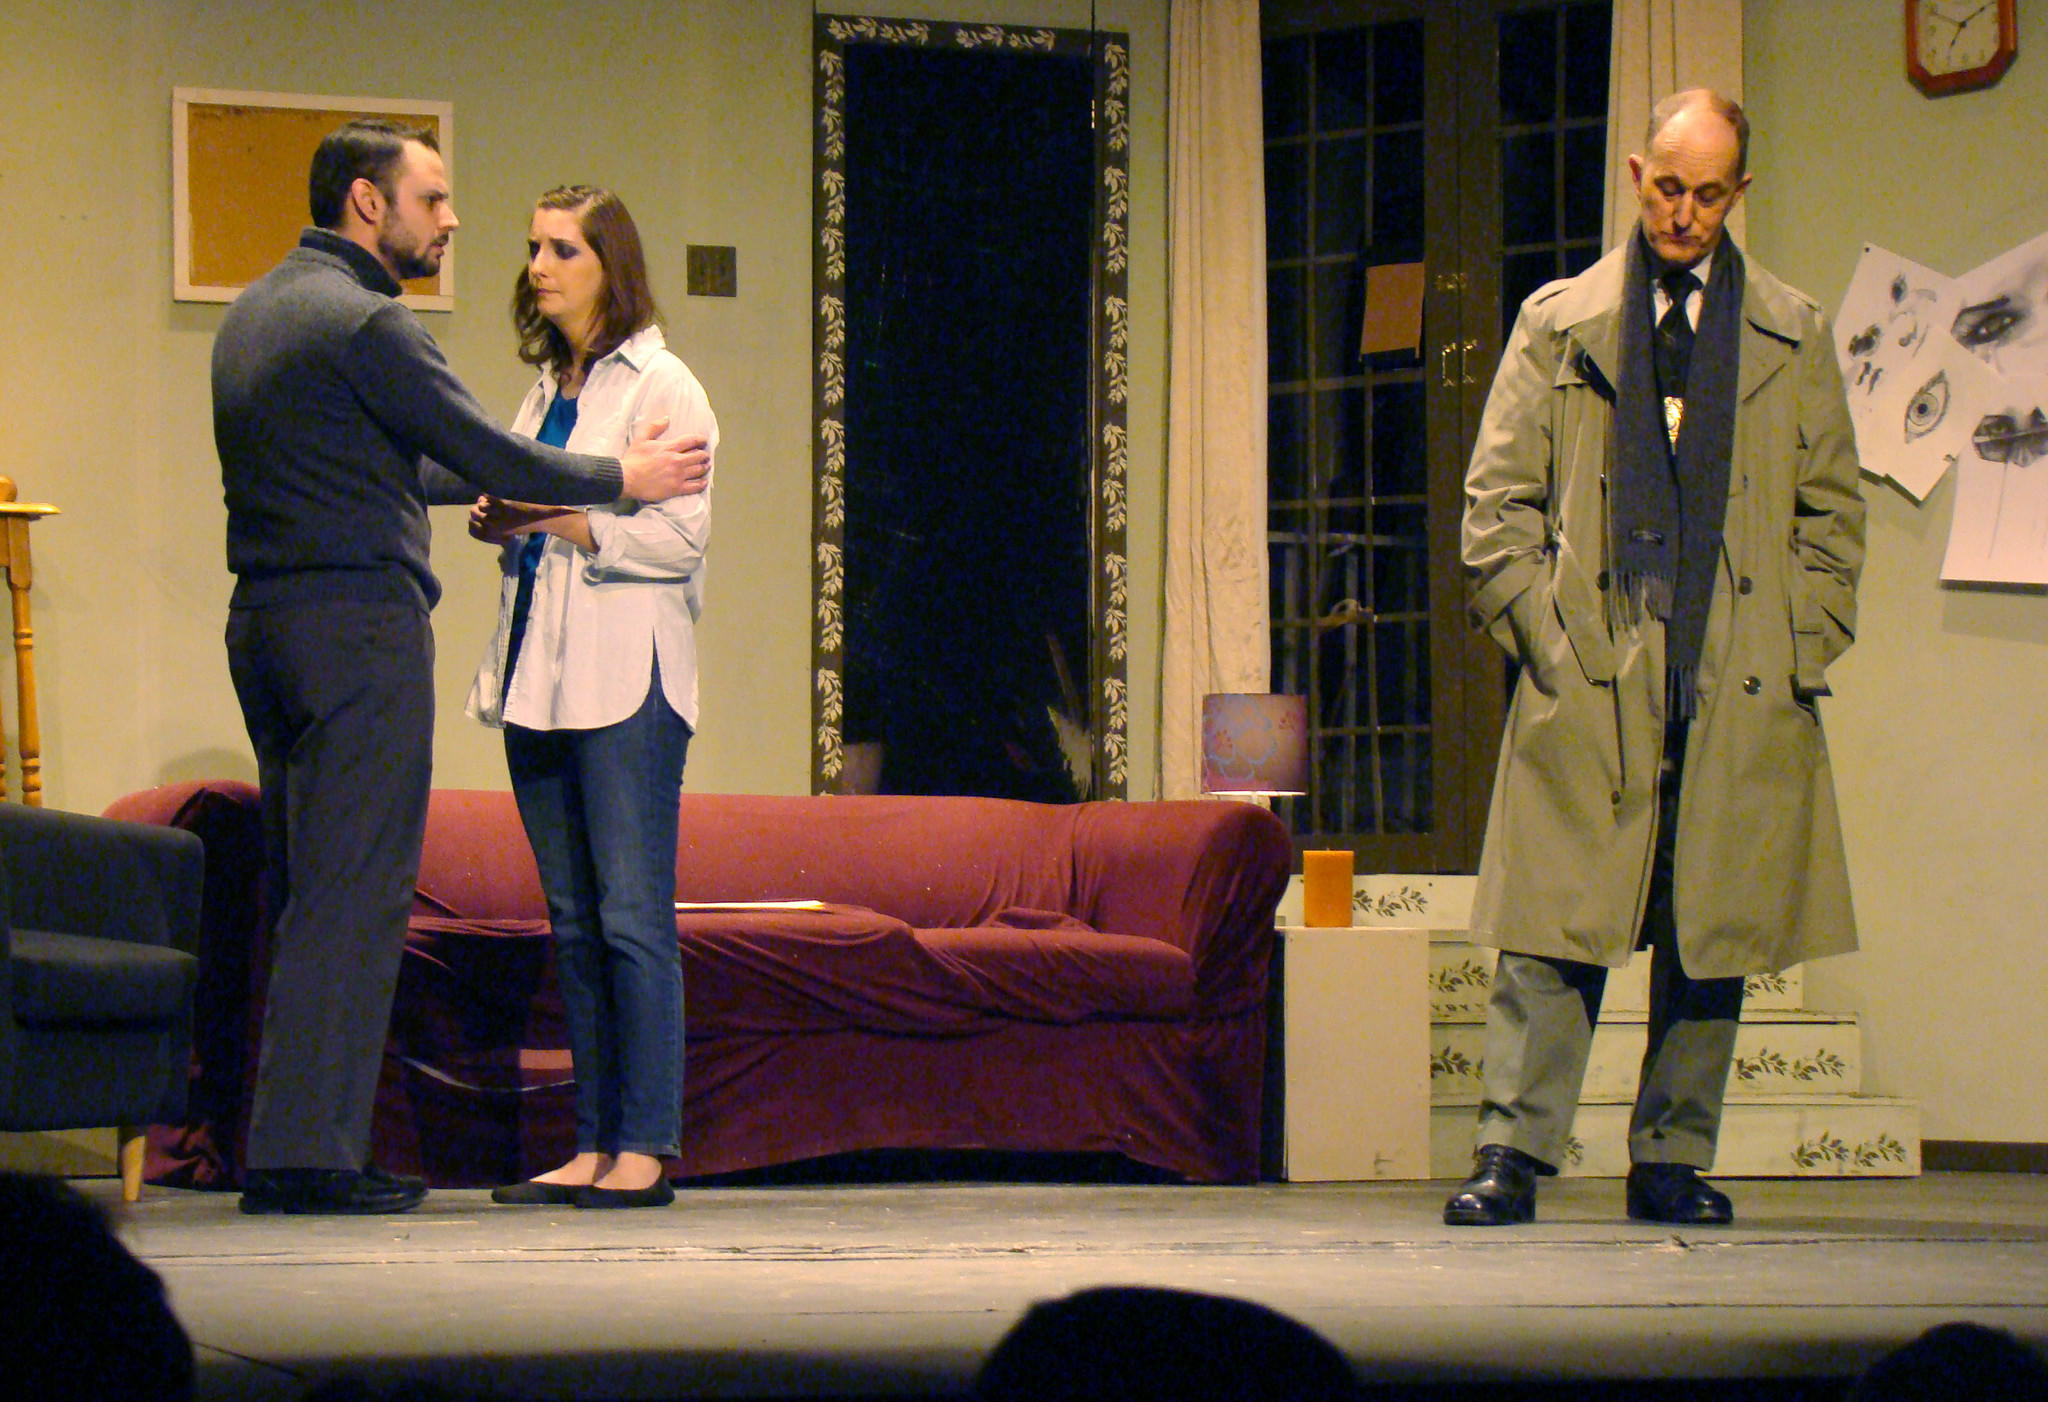 From left, Pat Reynolds as Mark Ryder, Amanda Magoffin as Bret Conway and James McDaniel as Detective Russell Craig star in Dark Passages, continuing through March 16 at Bowie Community Theater.